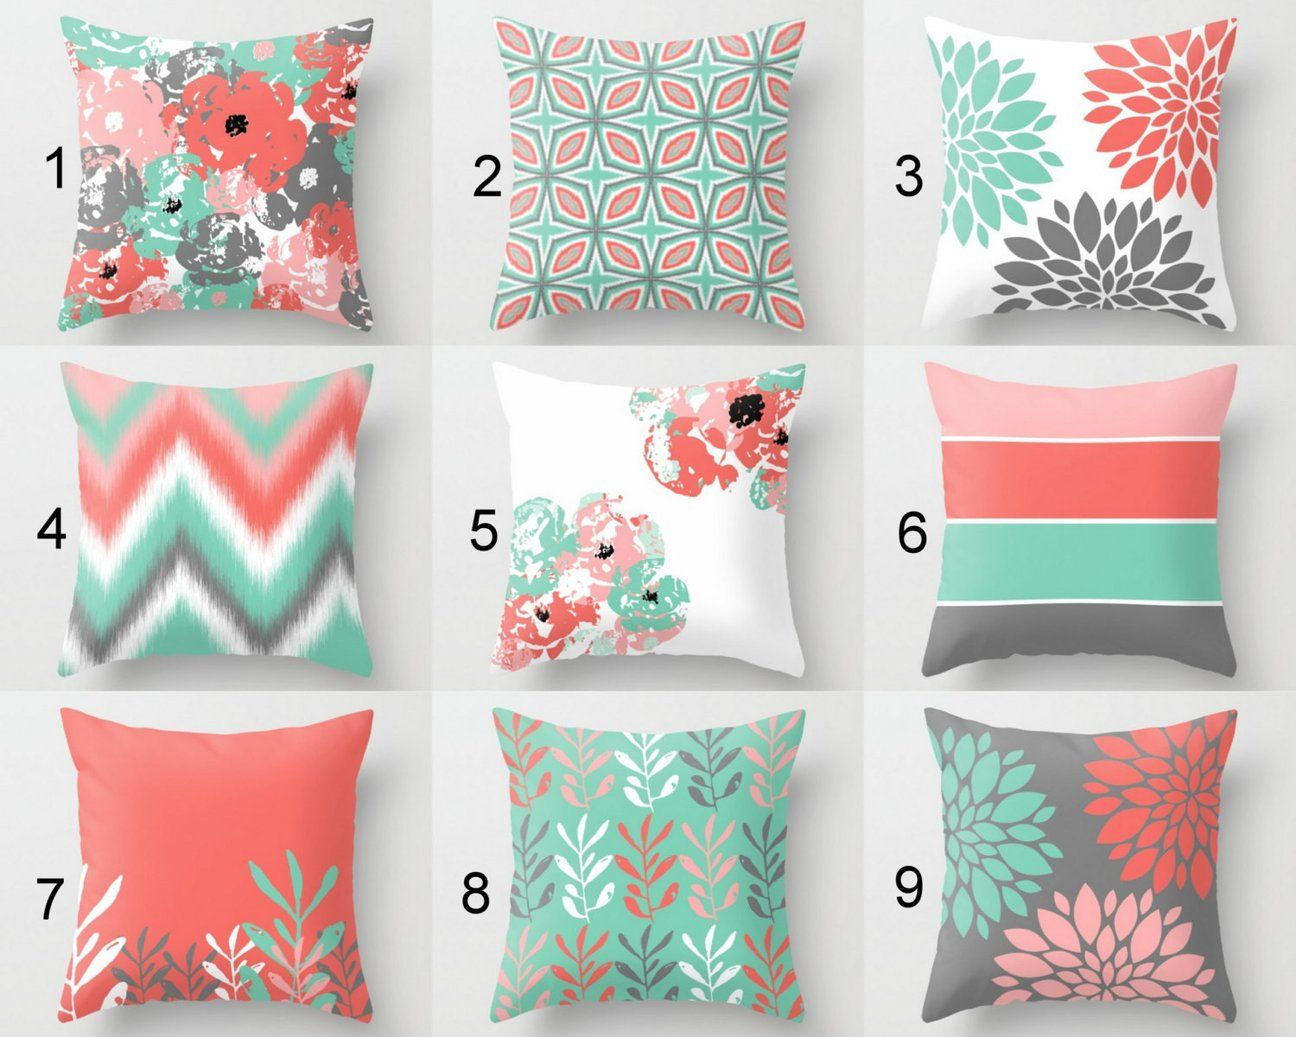 Pillow Covers Throw Pillow Covers Lucite Green Coral Grey Blush Whit Hlb Home Designs Coral Throw Pillows Spring Pillows Throw Pillows